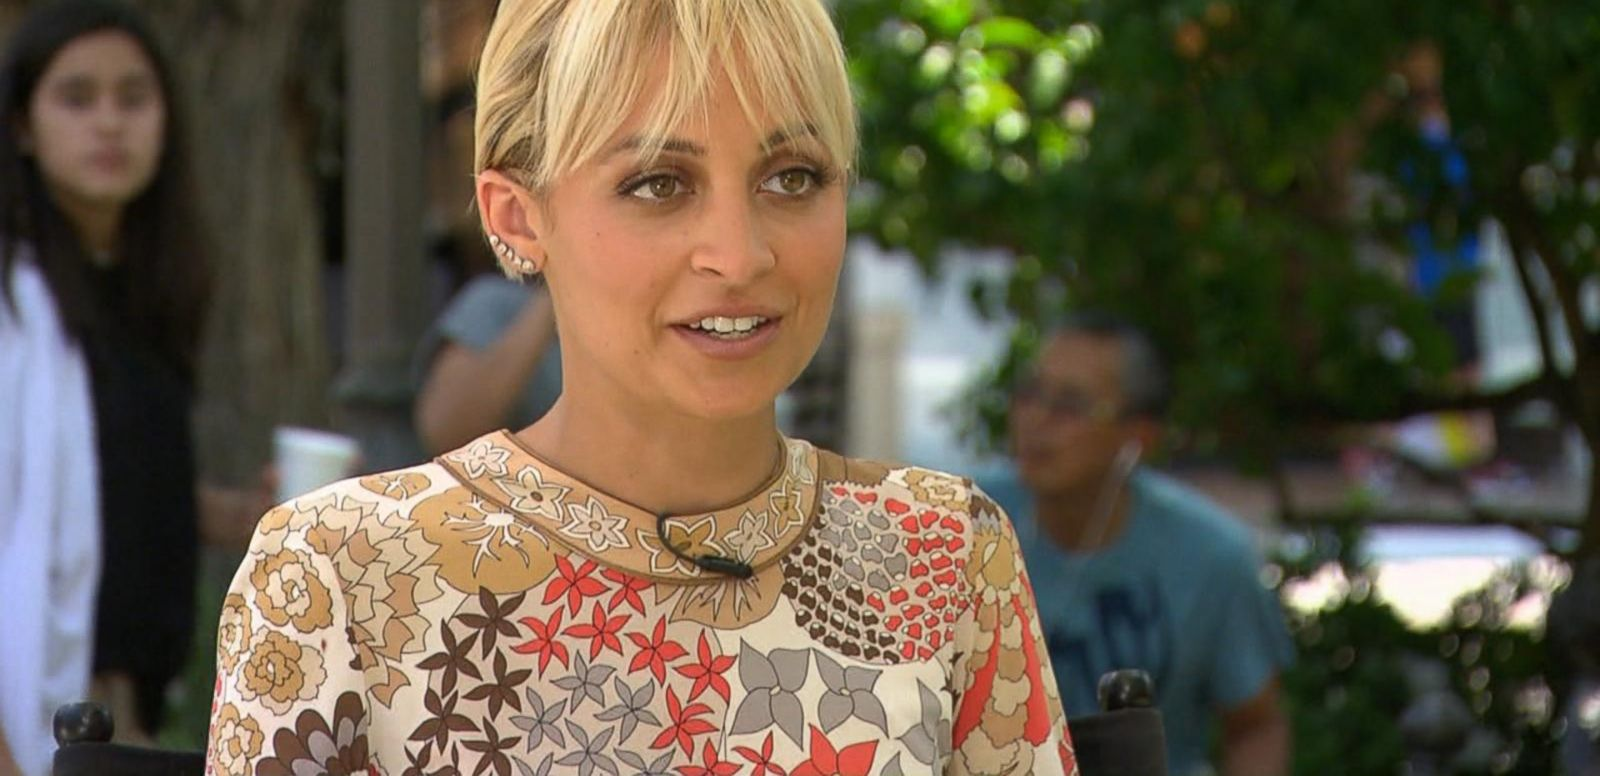 VIDEO: Nicole Richie Gets Candid, Gives Love and Fashion Advice